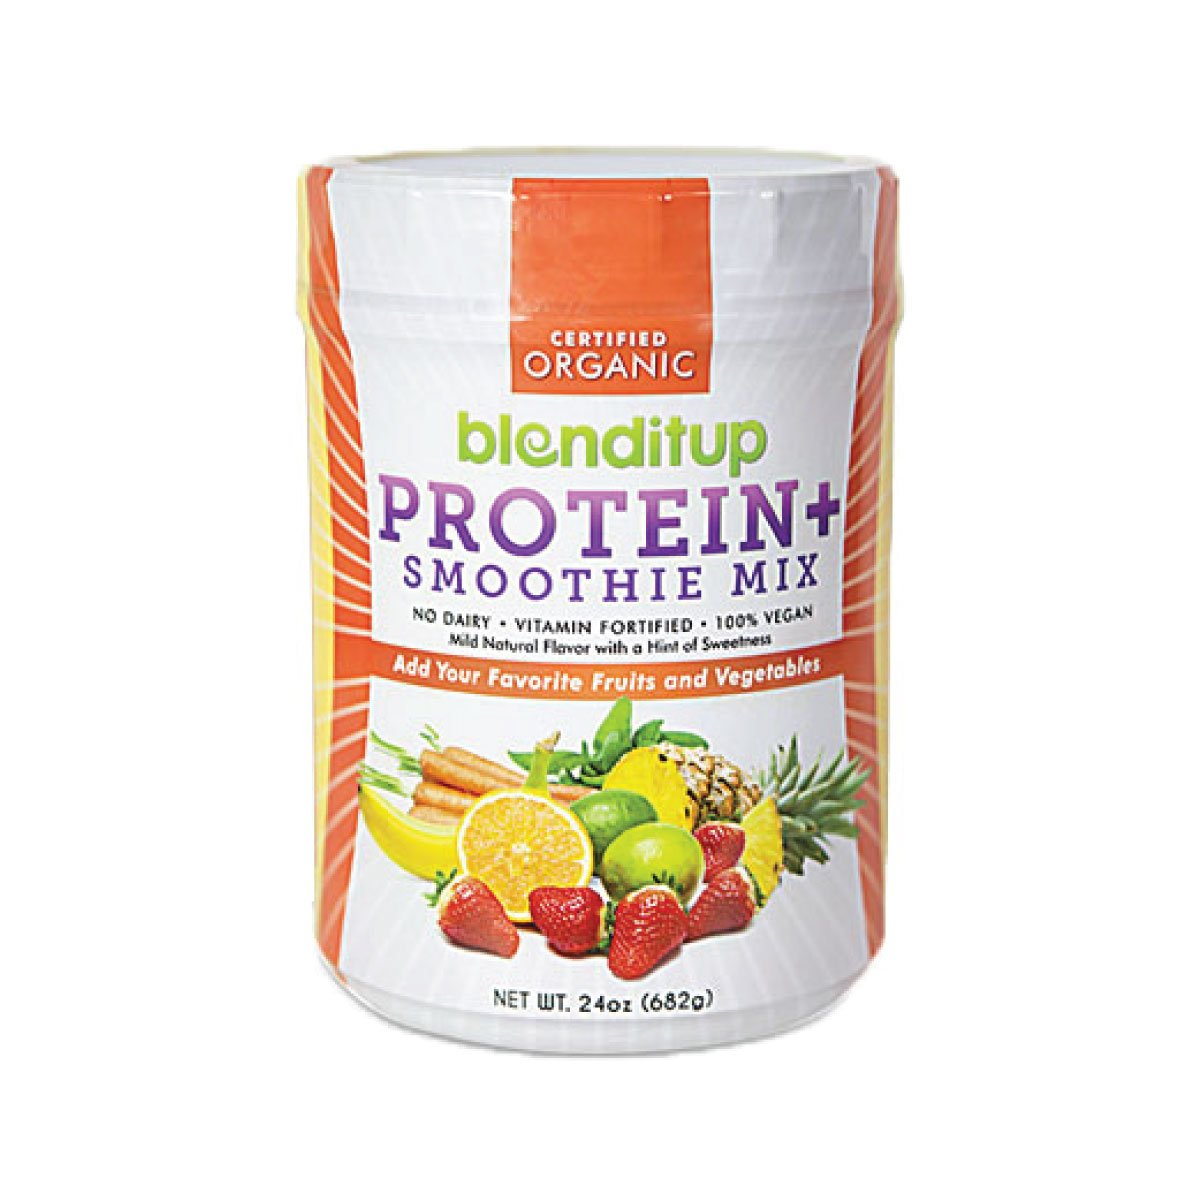 Organic Vegan Protein Powder - Plant Based Unflavored Smoothie Mix - Meal Replacement - Non Dairy, Gluten Free, Kosher, Non-GMO with Soy Protein Isolate - 24 Oz by BlendItUp by BlendItUp